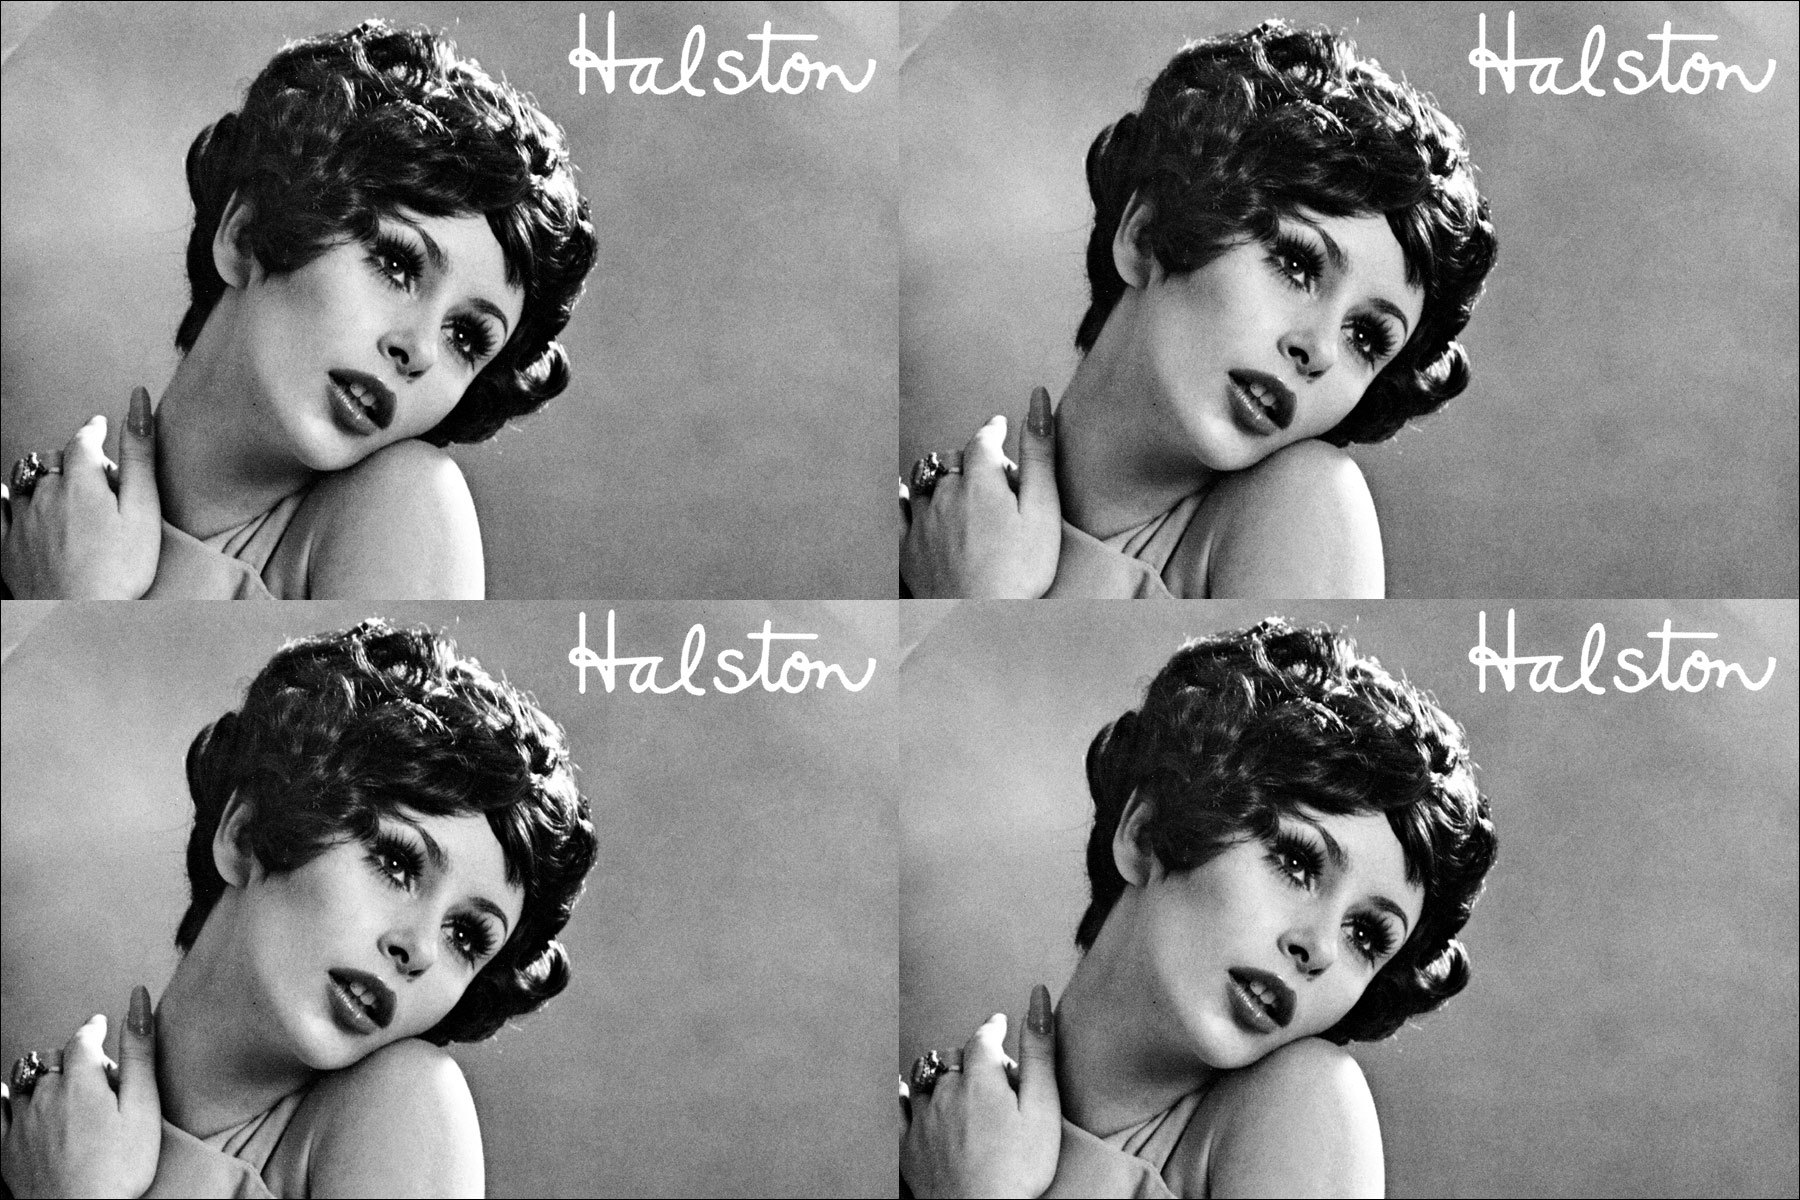 Cover image for Halston wig booklet. Ponyboy Magazine NYC.